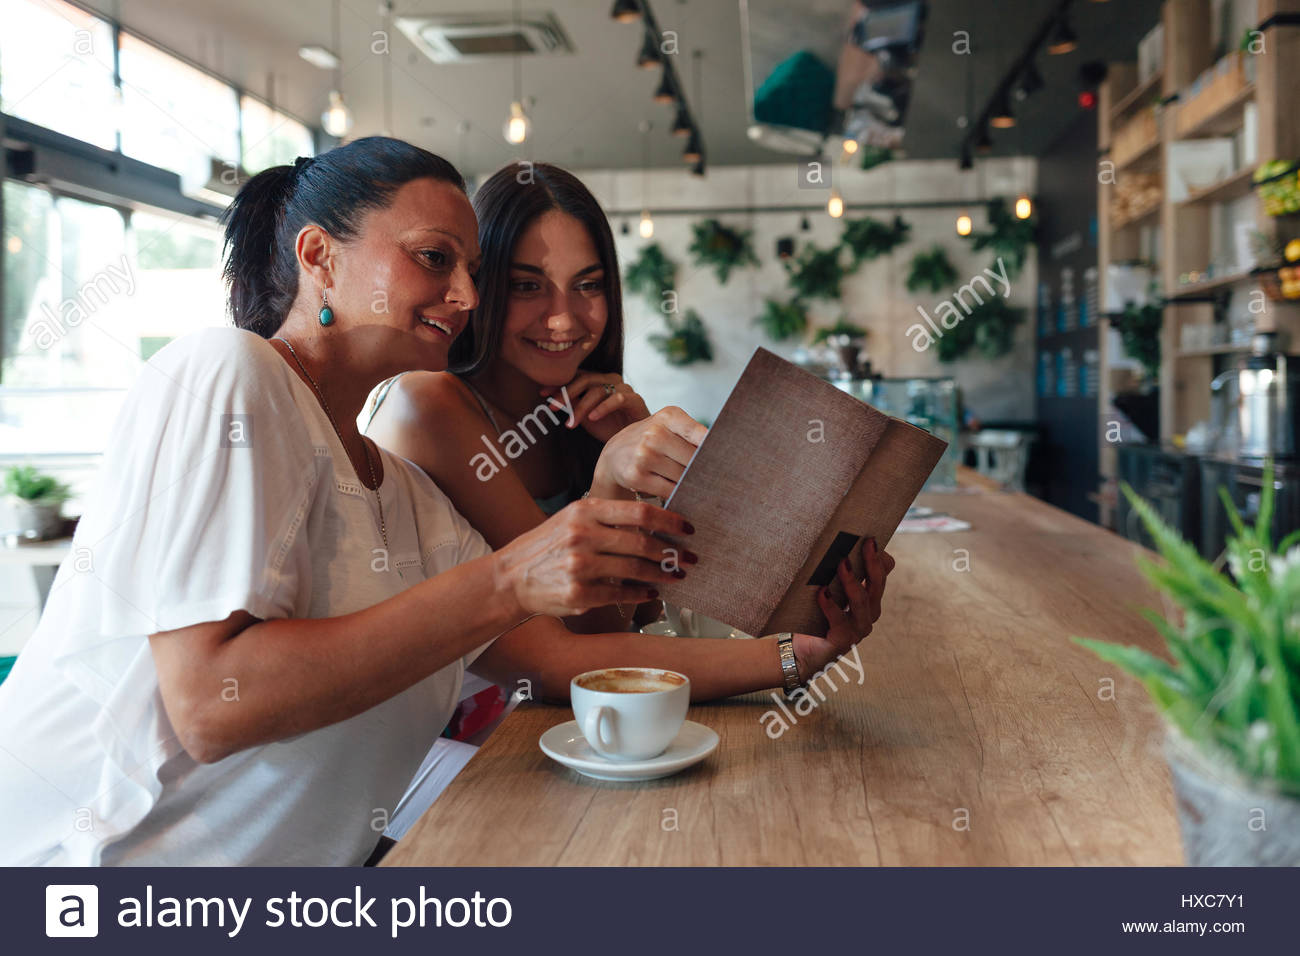 Mother and daughter drinking coffee and looking at cafe menu - Stock Image